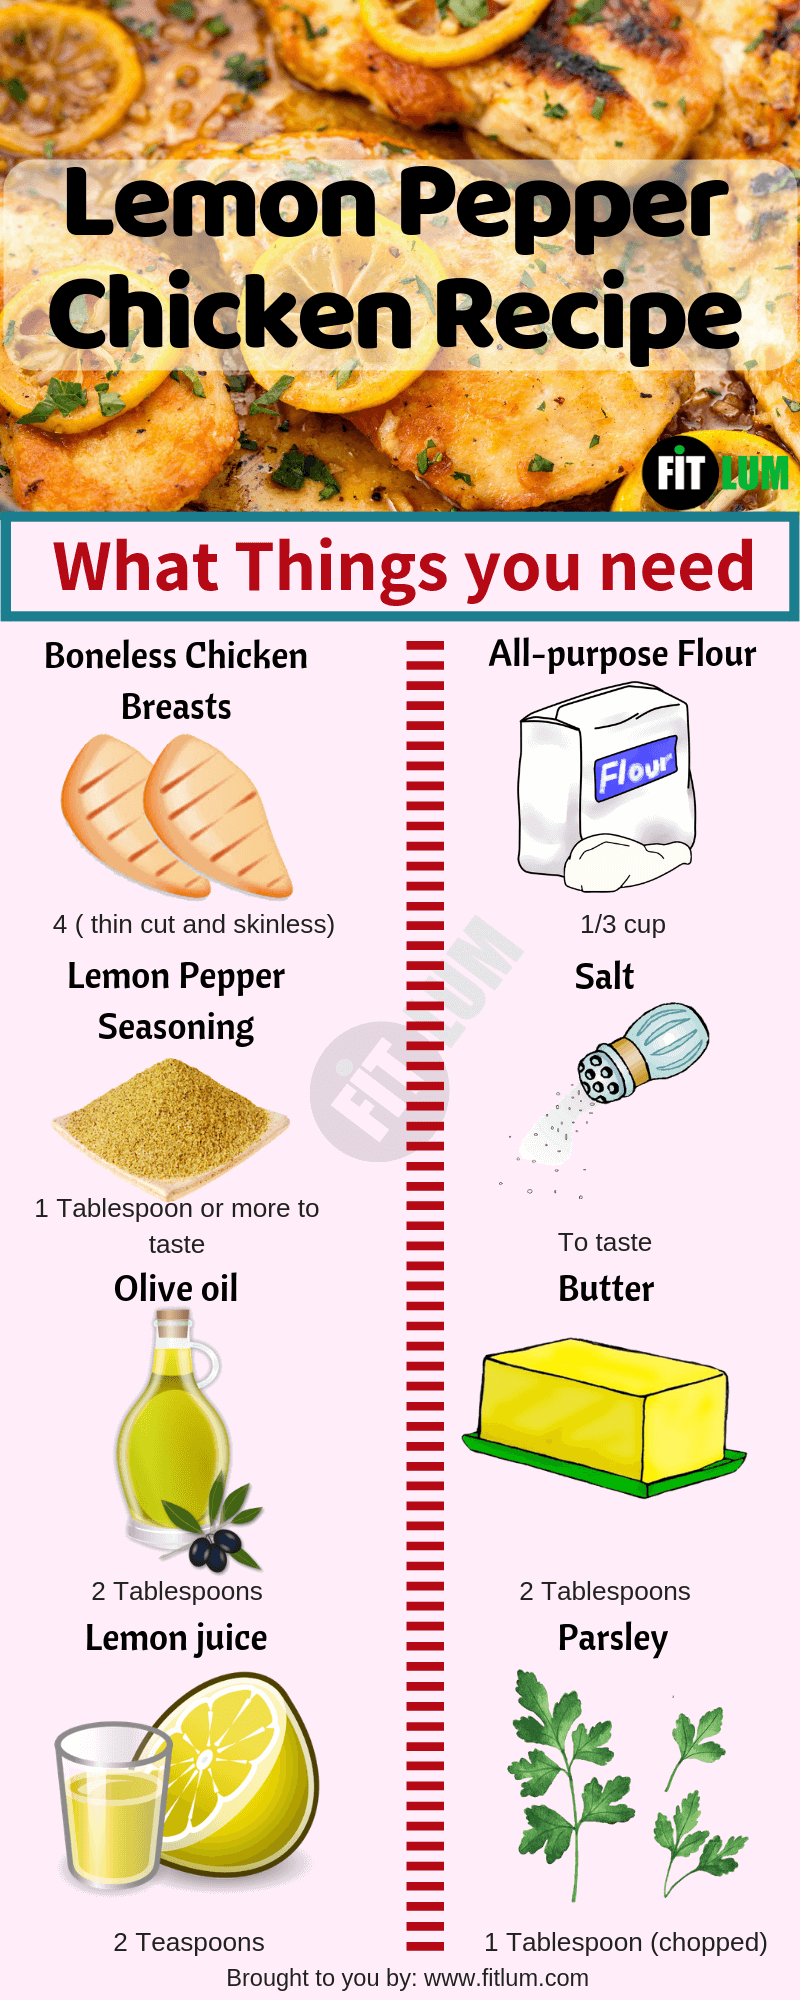 Lemon Pepper Chicken Recipe Infographic